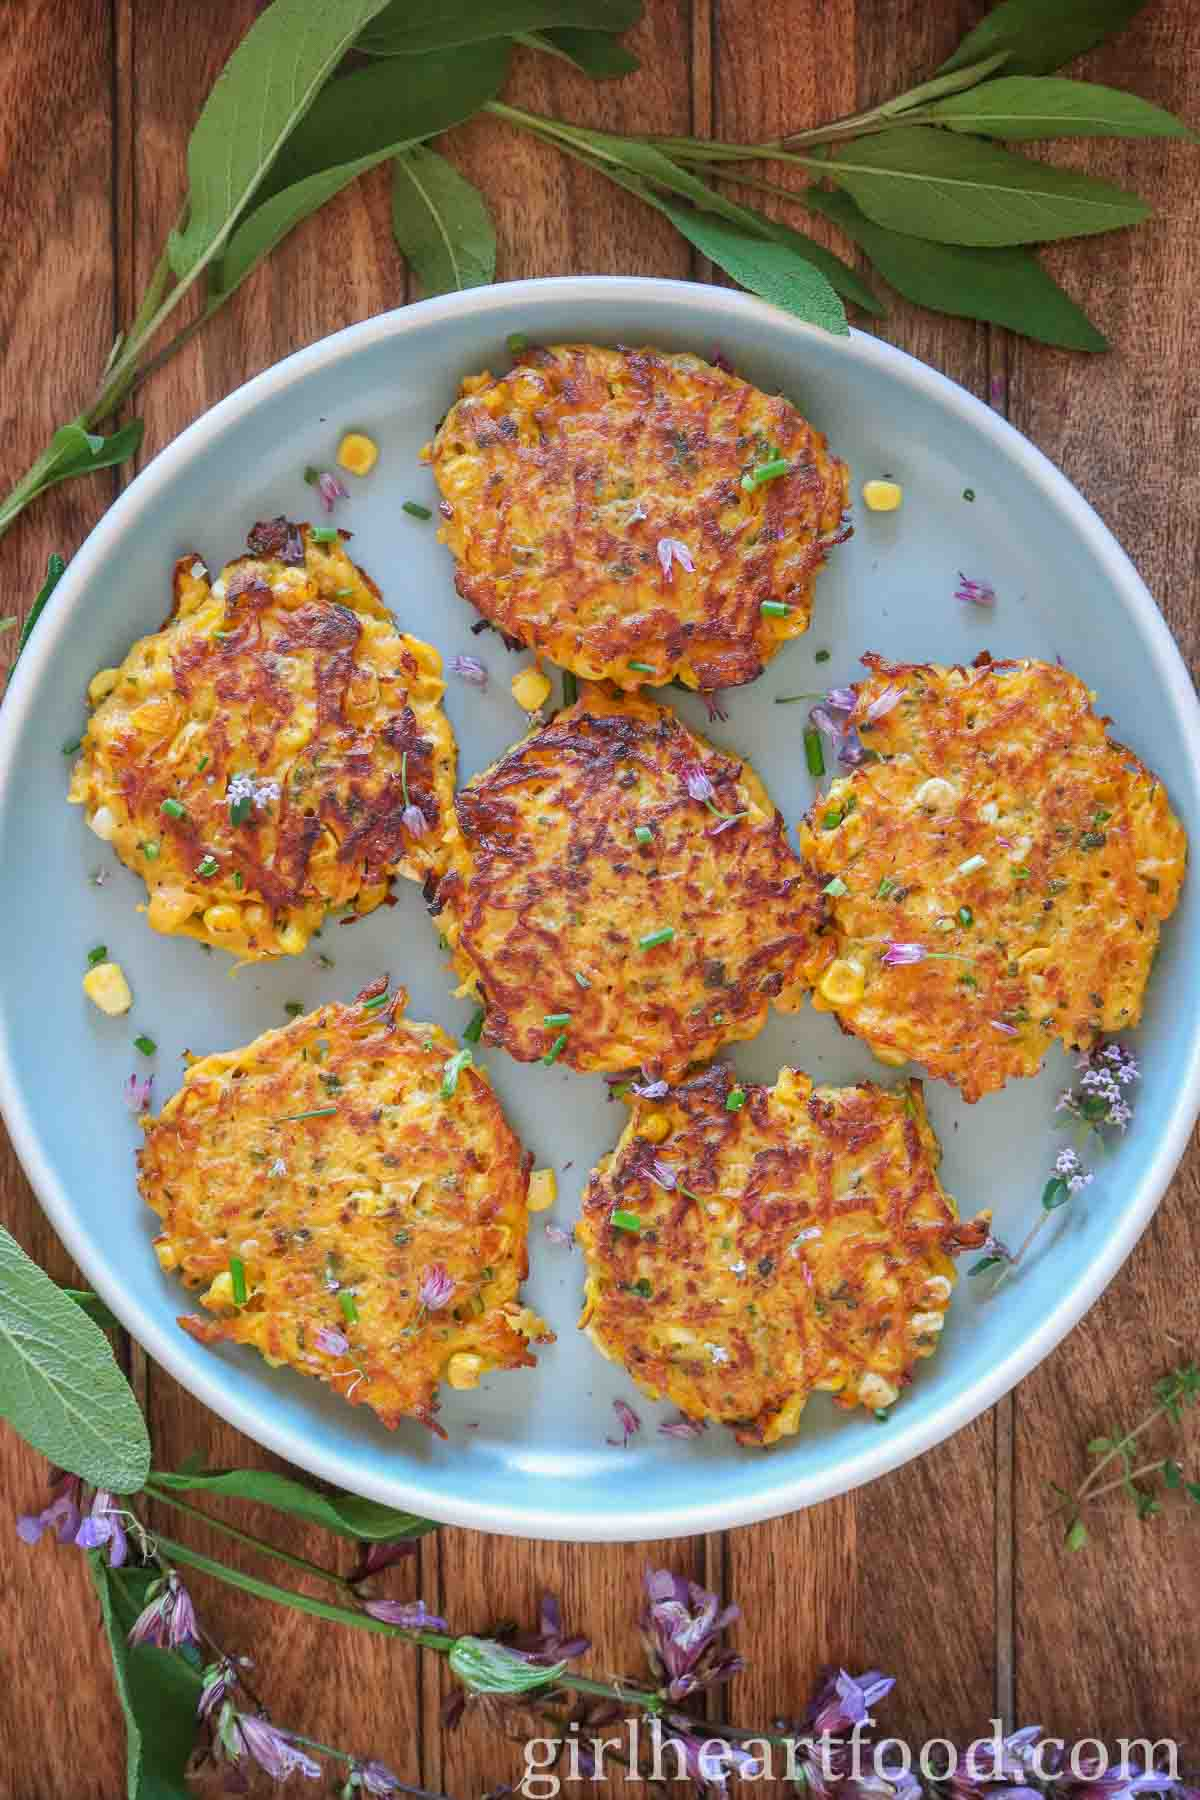 Six butternut squash corn fritters on a blue plate garnished with chives.